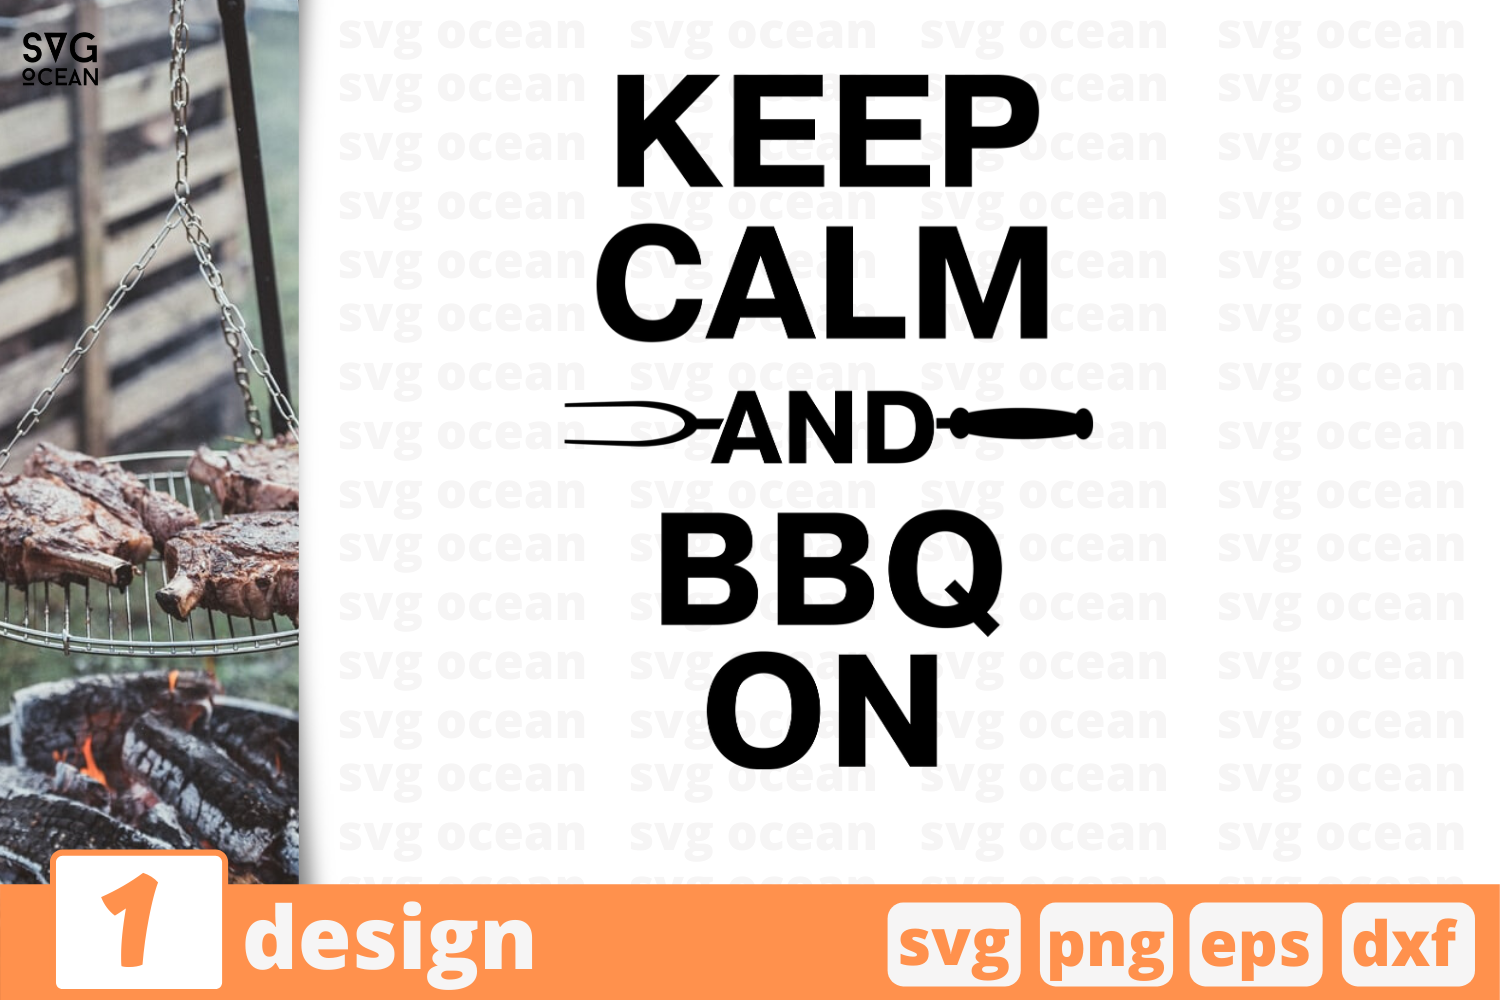 Download Free Keep Calm And Bbq Graphic By Svgocean Creative Fabrica for Cricut Explore, Silhouette and other cutting machines.